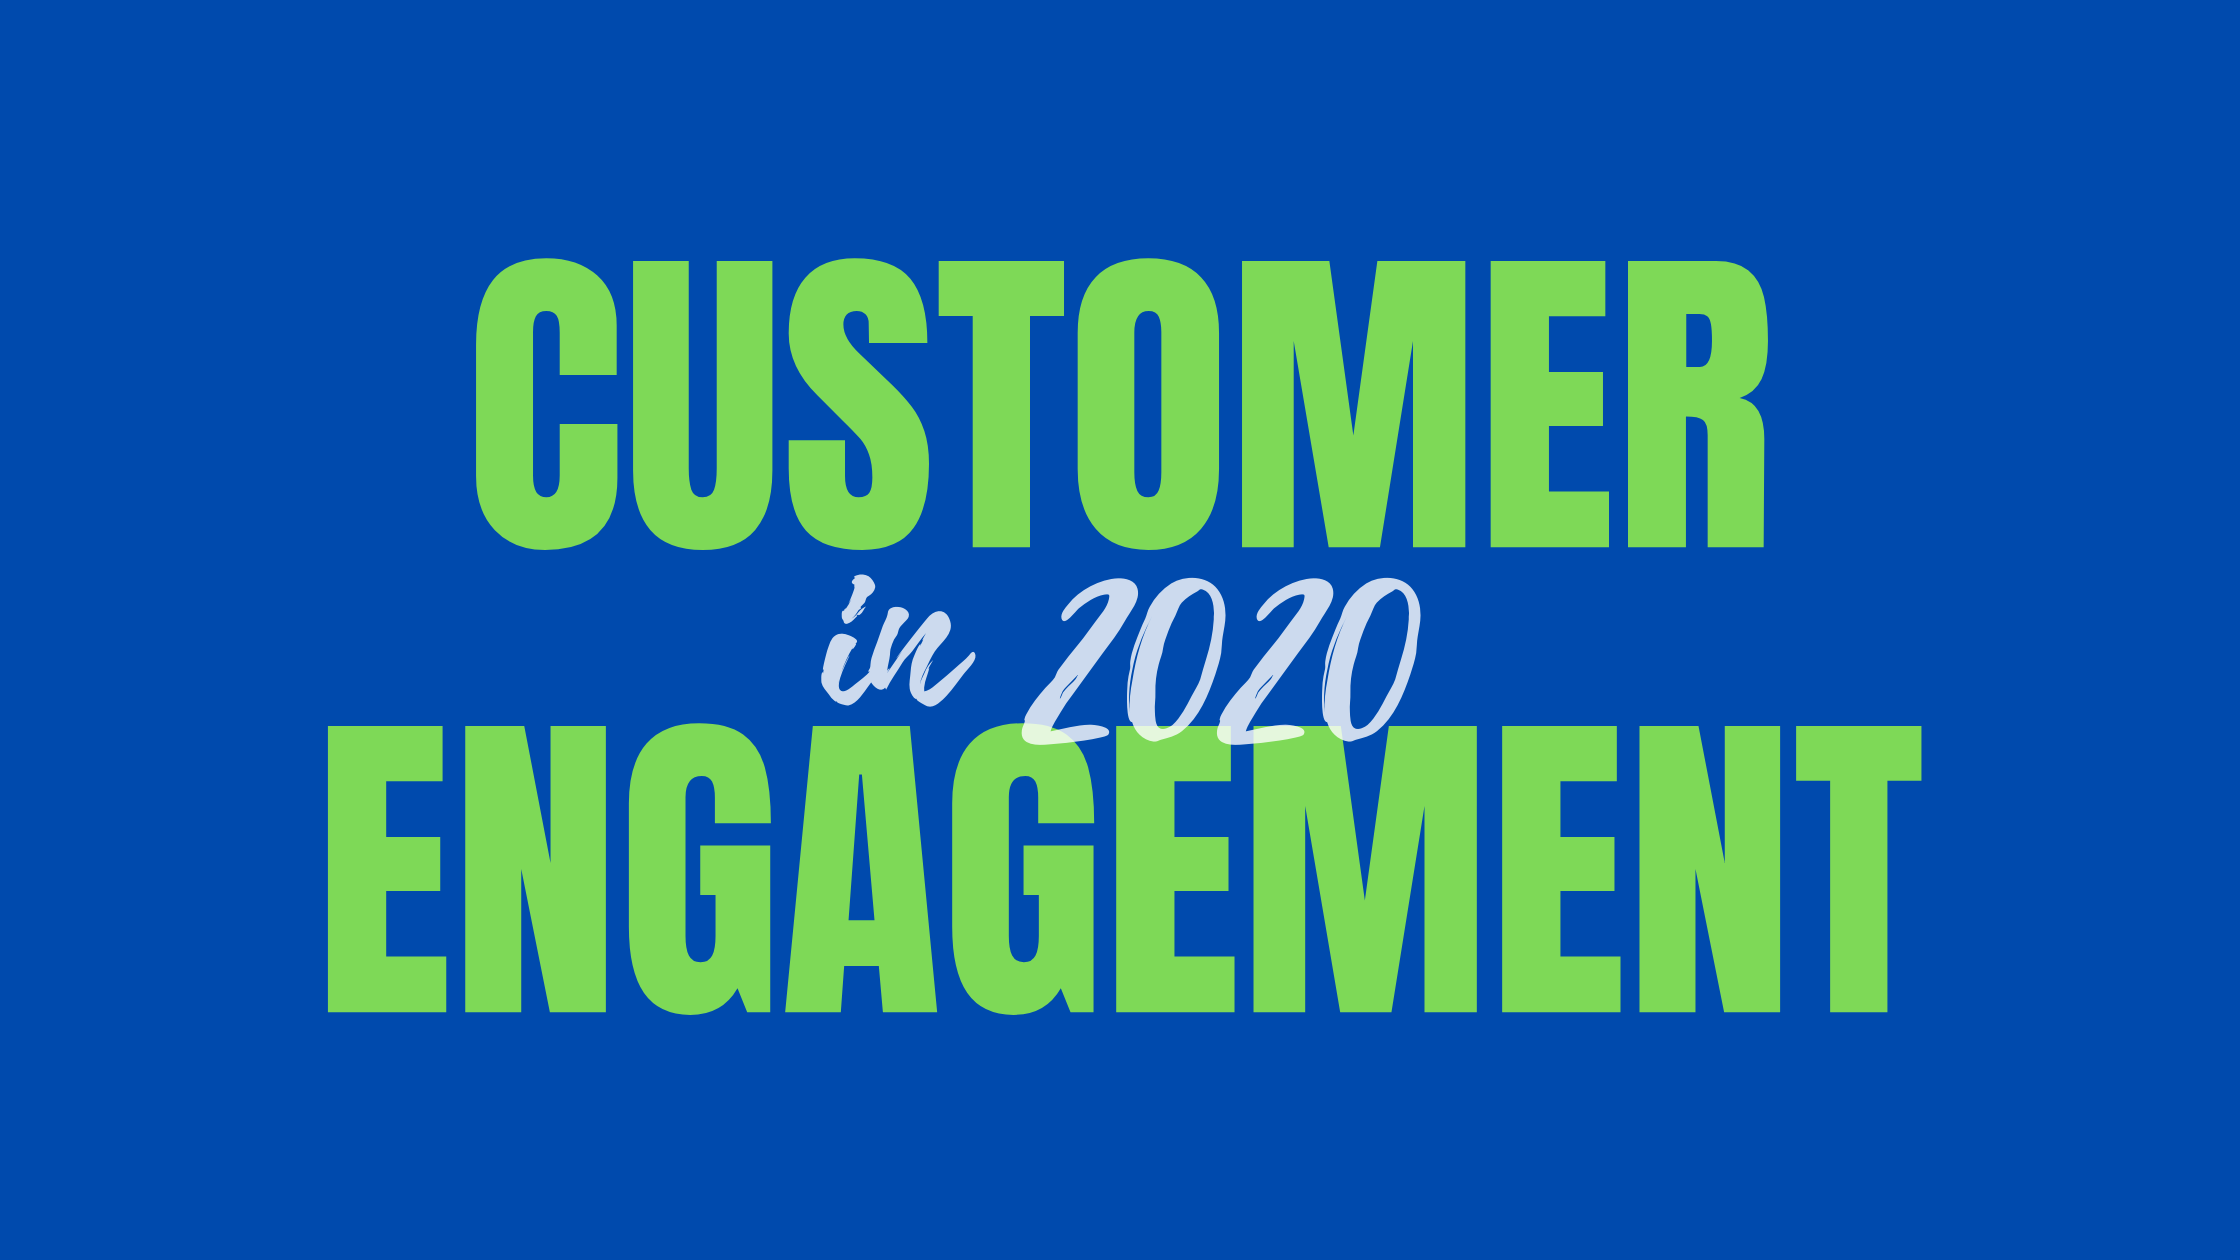 Customer Engagement in 2020